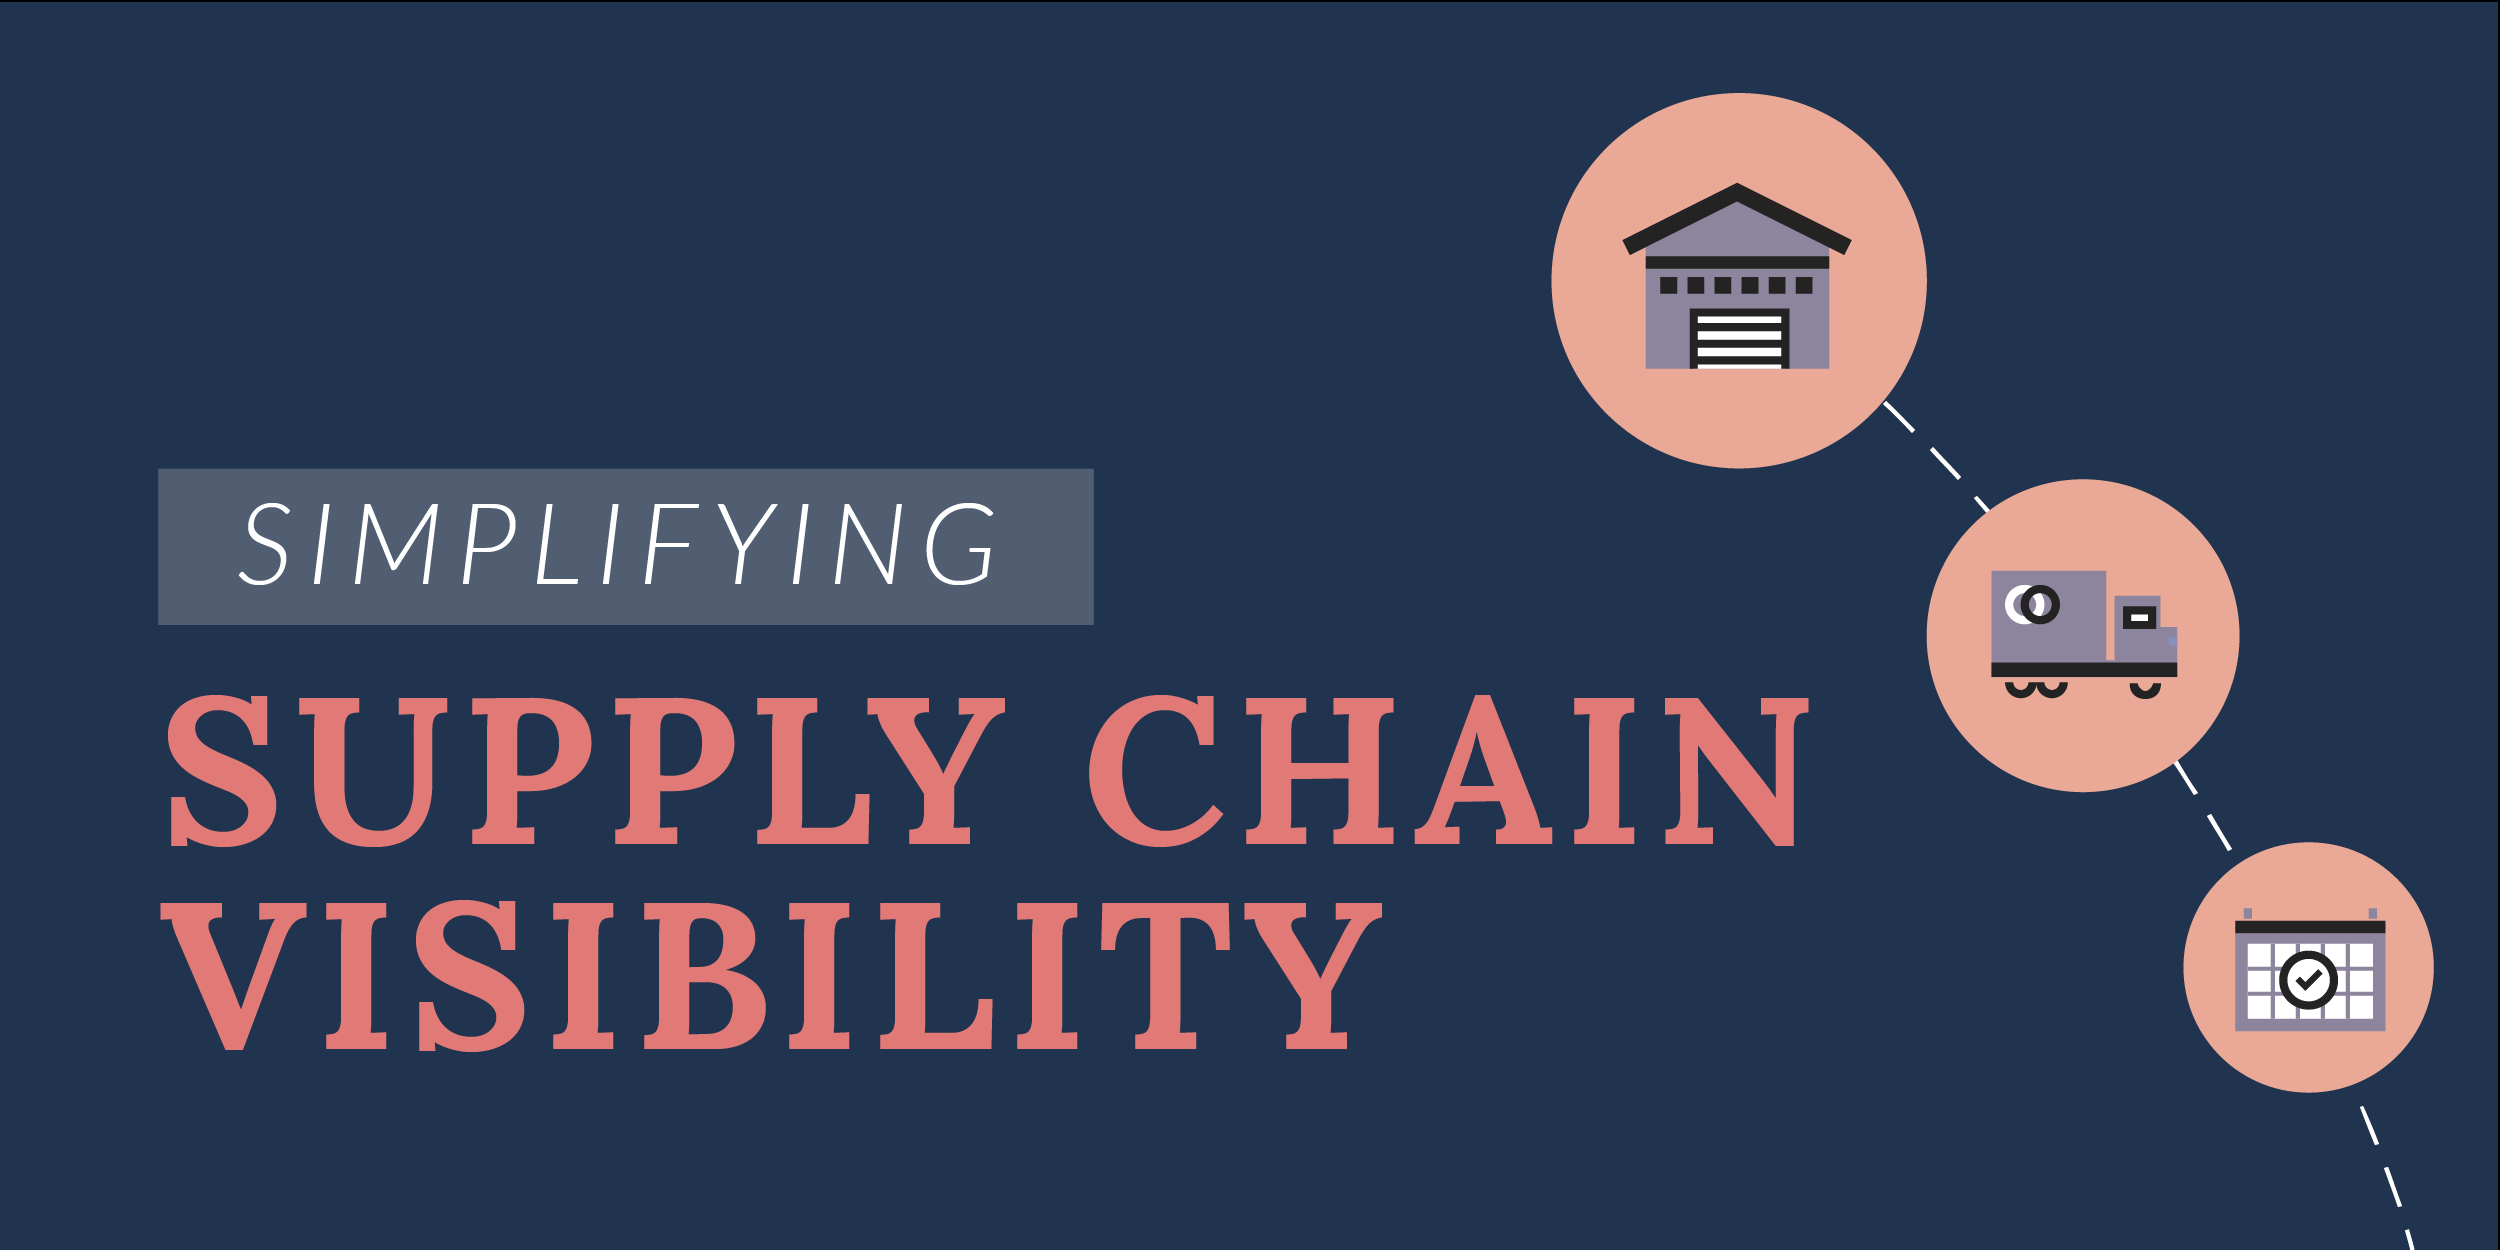 Simplifying Supply Chain Visibility